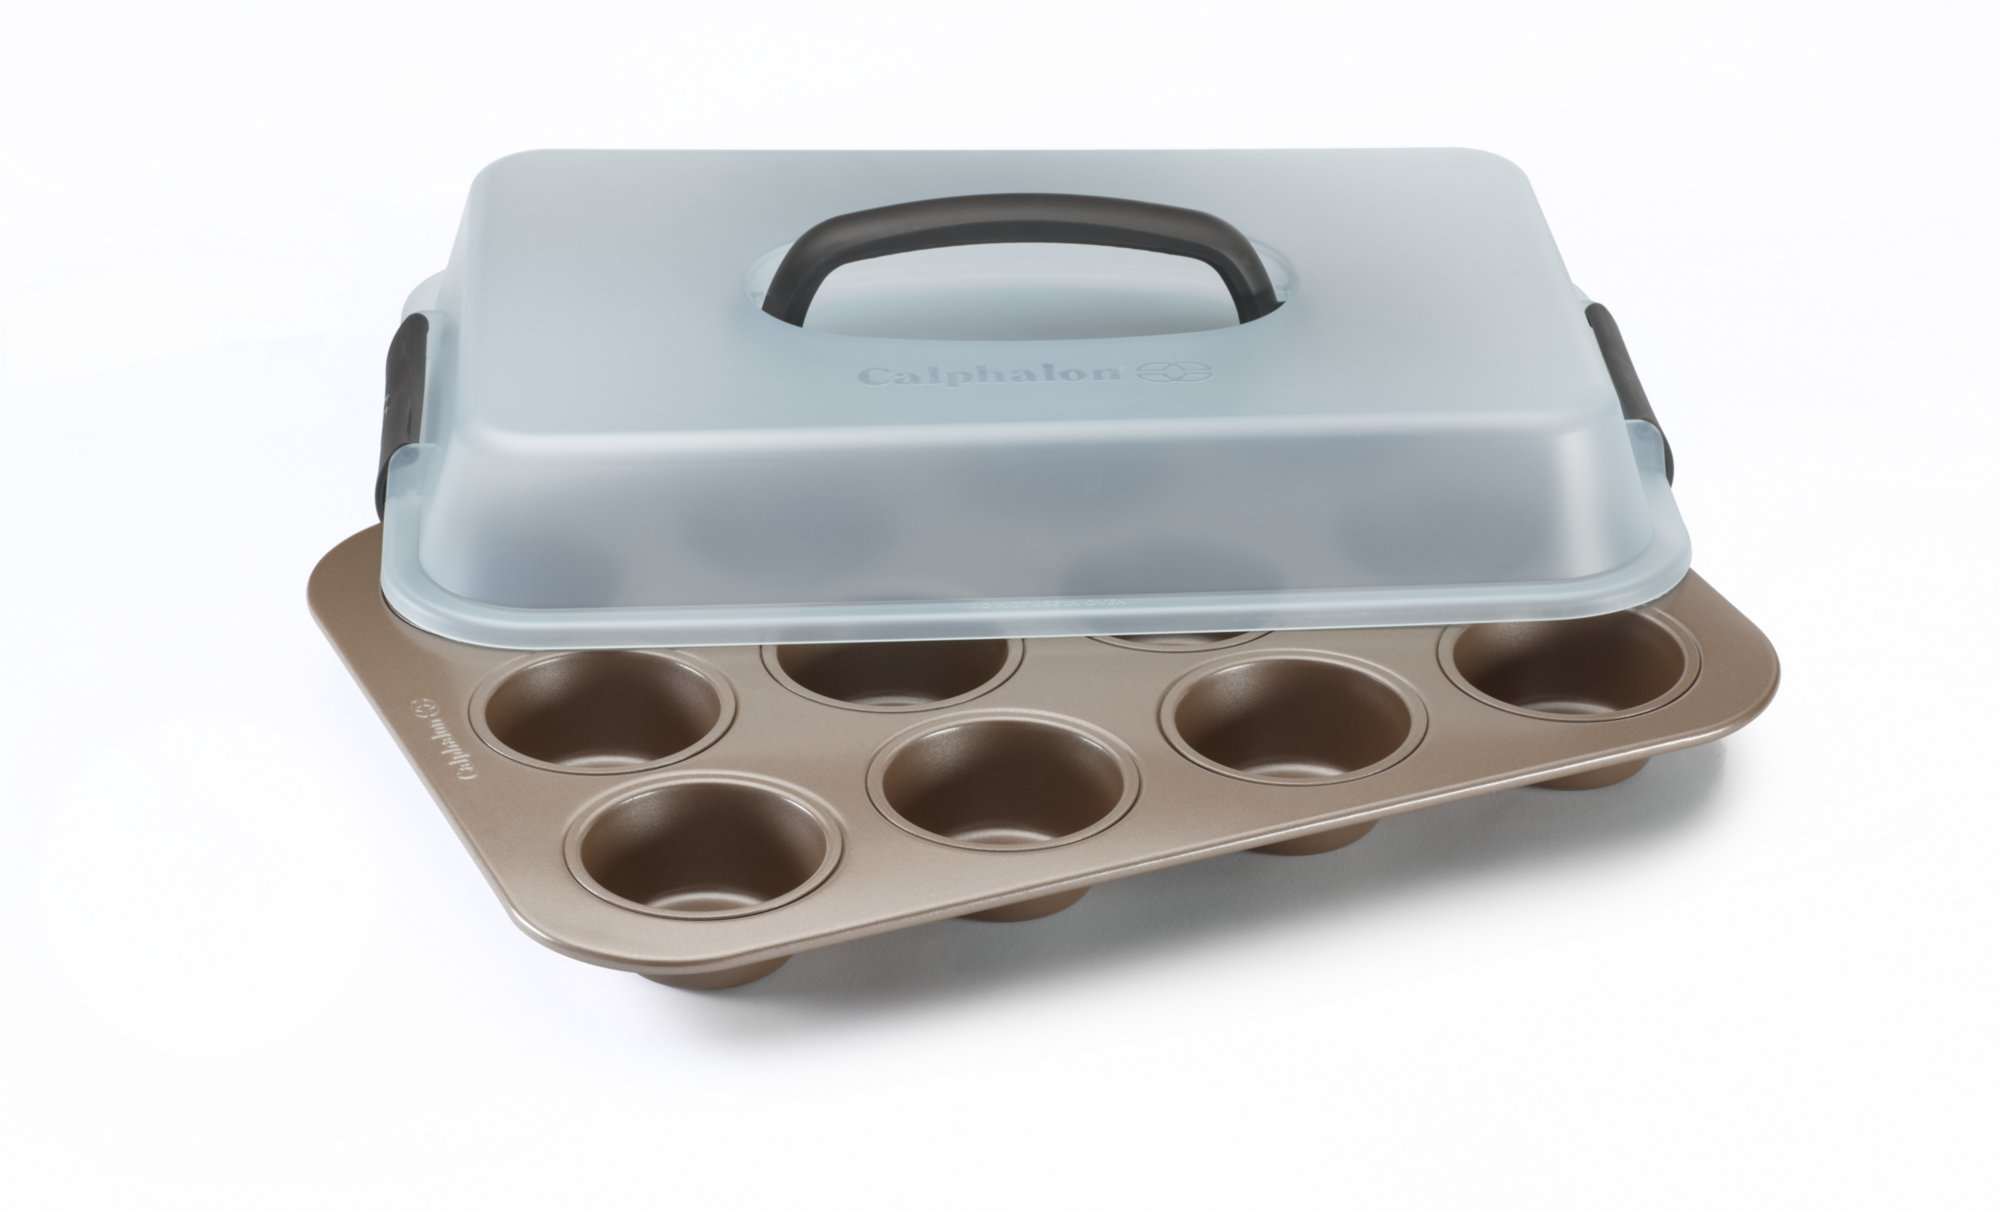 Simply Calphalon Nonstick Bakeware 12 cup Covered Cupcake Pan